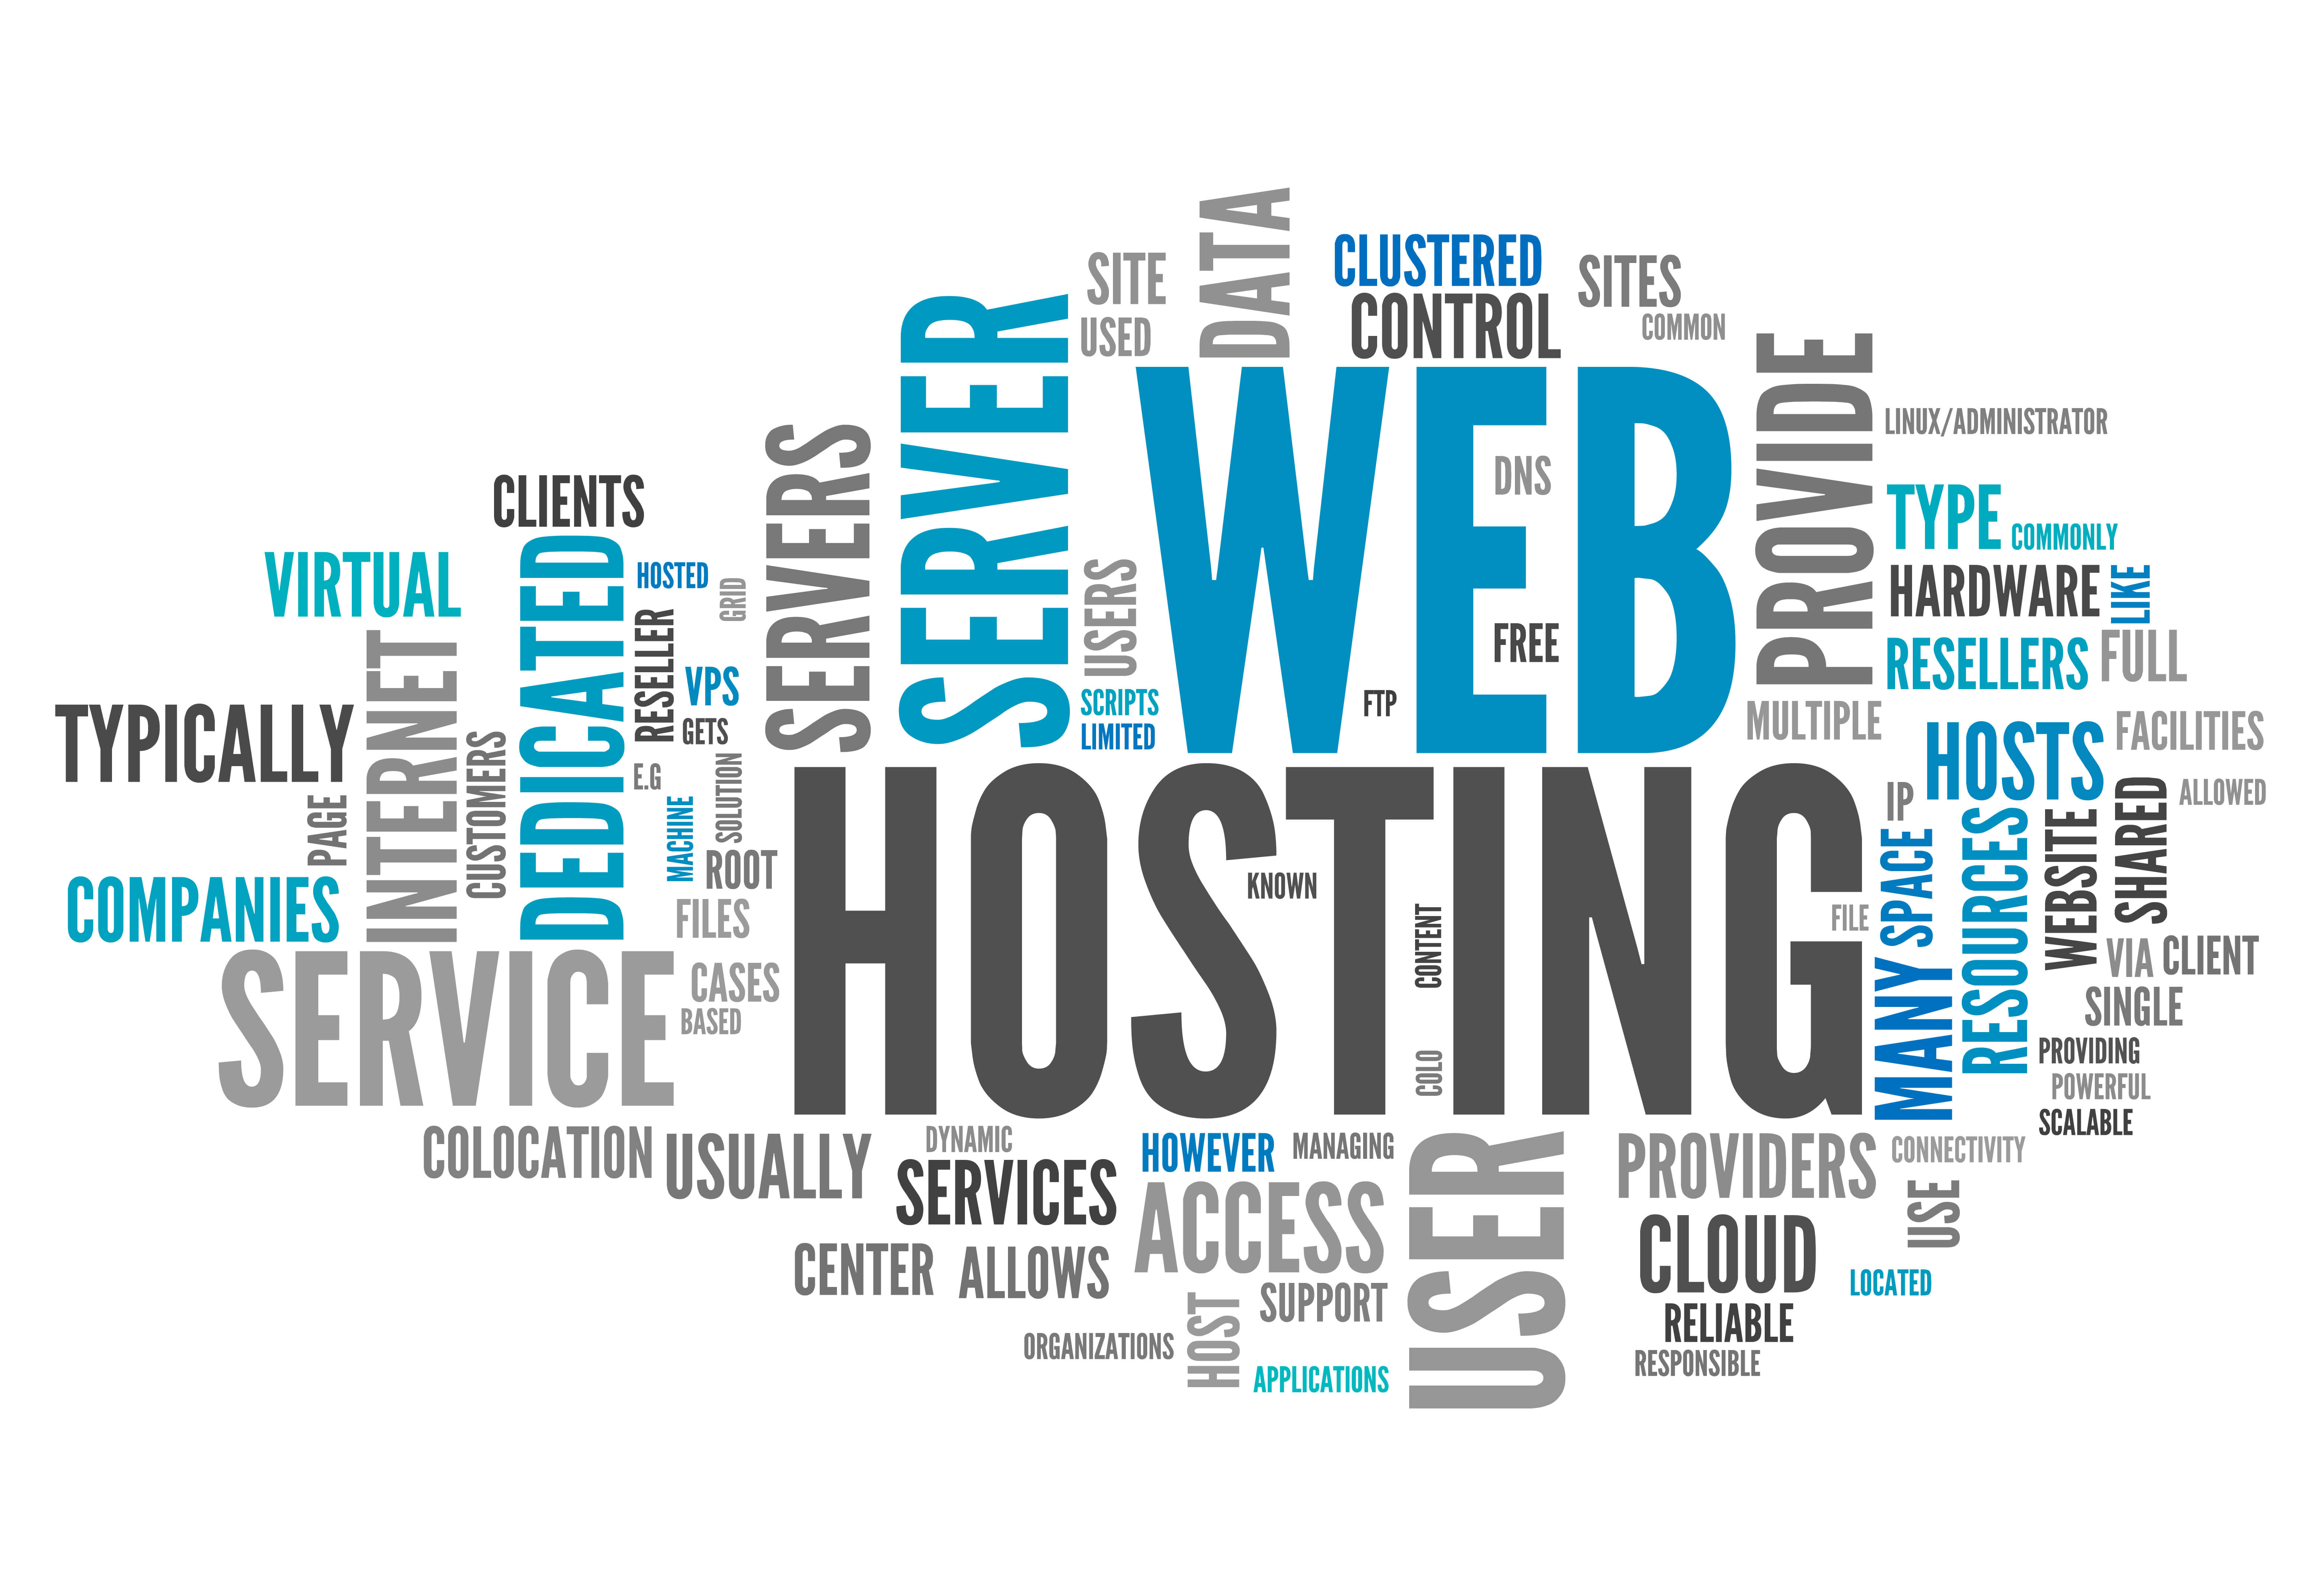 Web hosting is a booming industry right now and you might want to be a part of it. You can create and develop a web hosting business under your own brand name and with your own conditions. The best way to start a web hosting business is through reseller hosting. Everyone who wants to create a website can be your client. If you intend to establish the web hosting server setup, then this process will take a lot of time and you will also have to invest a lot of money in it. Therefore, the best alternative is to set up your business through reseller hosting. Through reseller hosting, you are leasing the server setup of an existing web hosting company. Now a day's most of the web hosting companies offer white label reseller hosting packages that enable you to create your business website under your own brand name. Through a reseller hosting package, you will get sufficient hosting resources to create your business website. What are the steps involved in starting your web hosting business through reseller hosting? Register The Preferred Domain Name Domain name is the unique identity of your business. It is important to have an impressive and catchy domain name that people can easily remember. Also, choosing the right domain name extension is very important. For example if you are based in UK, you can choose a domain name like webhostingprovider.co.uk instead of .com. Brainstorm yourself with domain name ideas and take some time with this step because you are not going to register the domain name again and again. Once your domain name is finalized, you can register it from the same web hosting company from where you are going to purchase the reseller hosting package. Choose The Right Reseller Hosting Plan You will see that there are many web hosting companies that provide reseller hosting. Before you sign up with any web hosting company, make sure to check the plan specifications and prices. Compare many reseller hosting plans before making the final decision. Initially a 